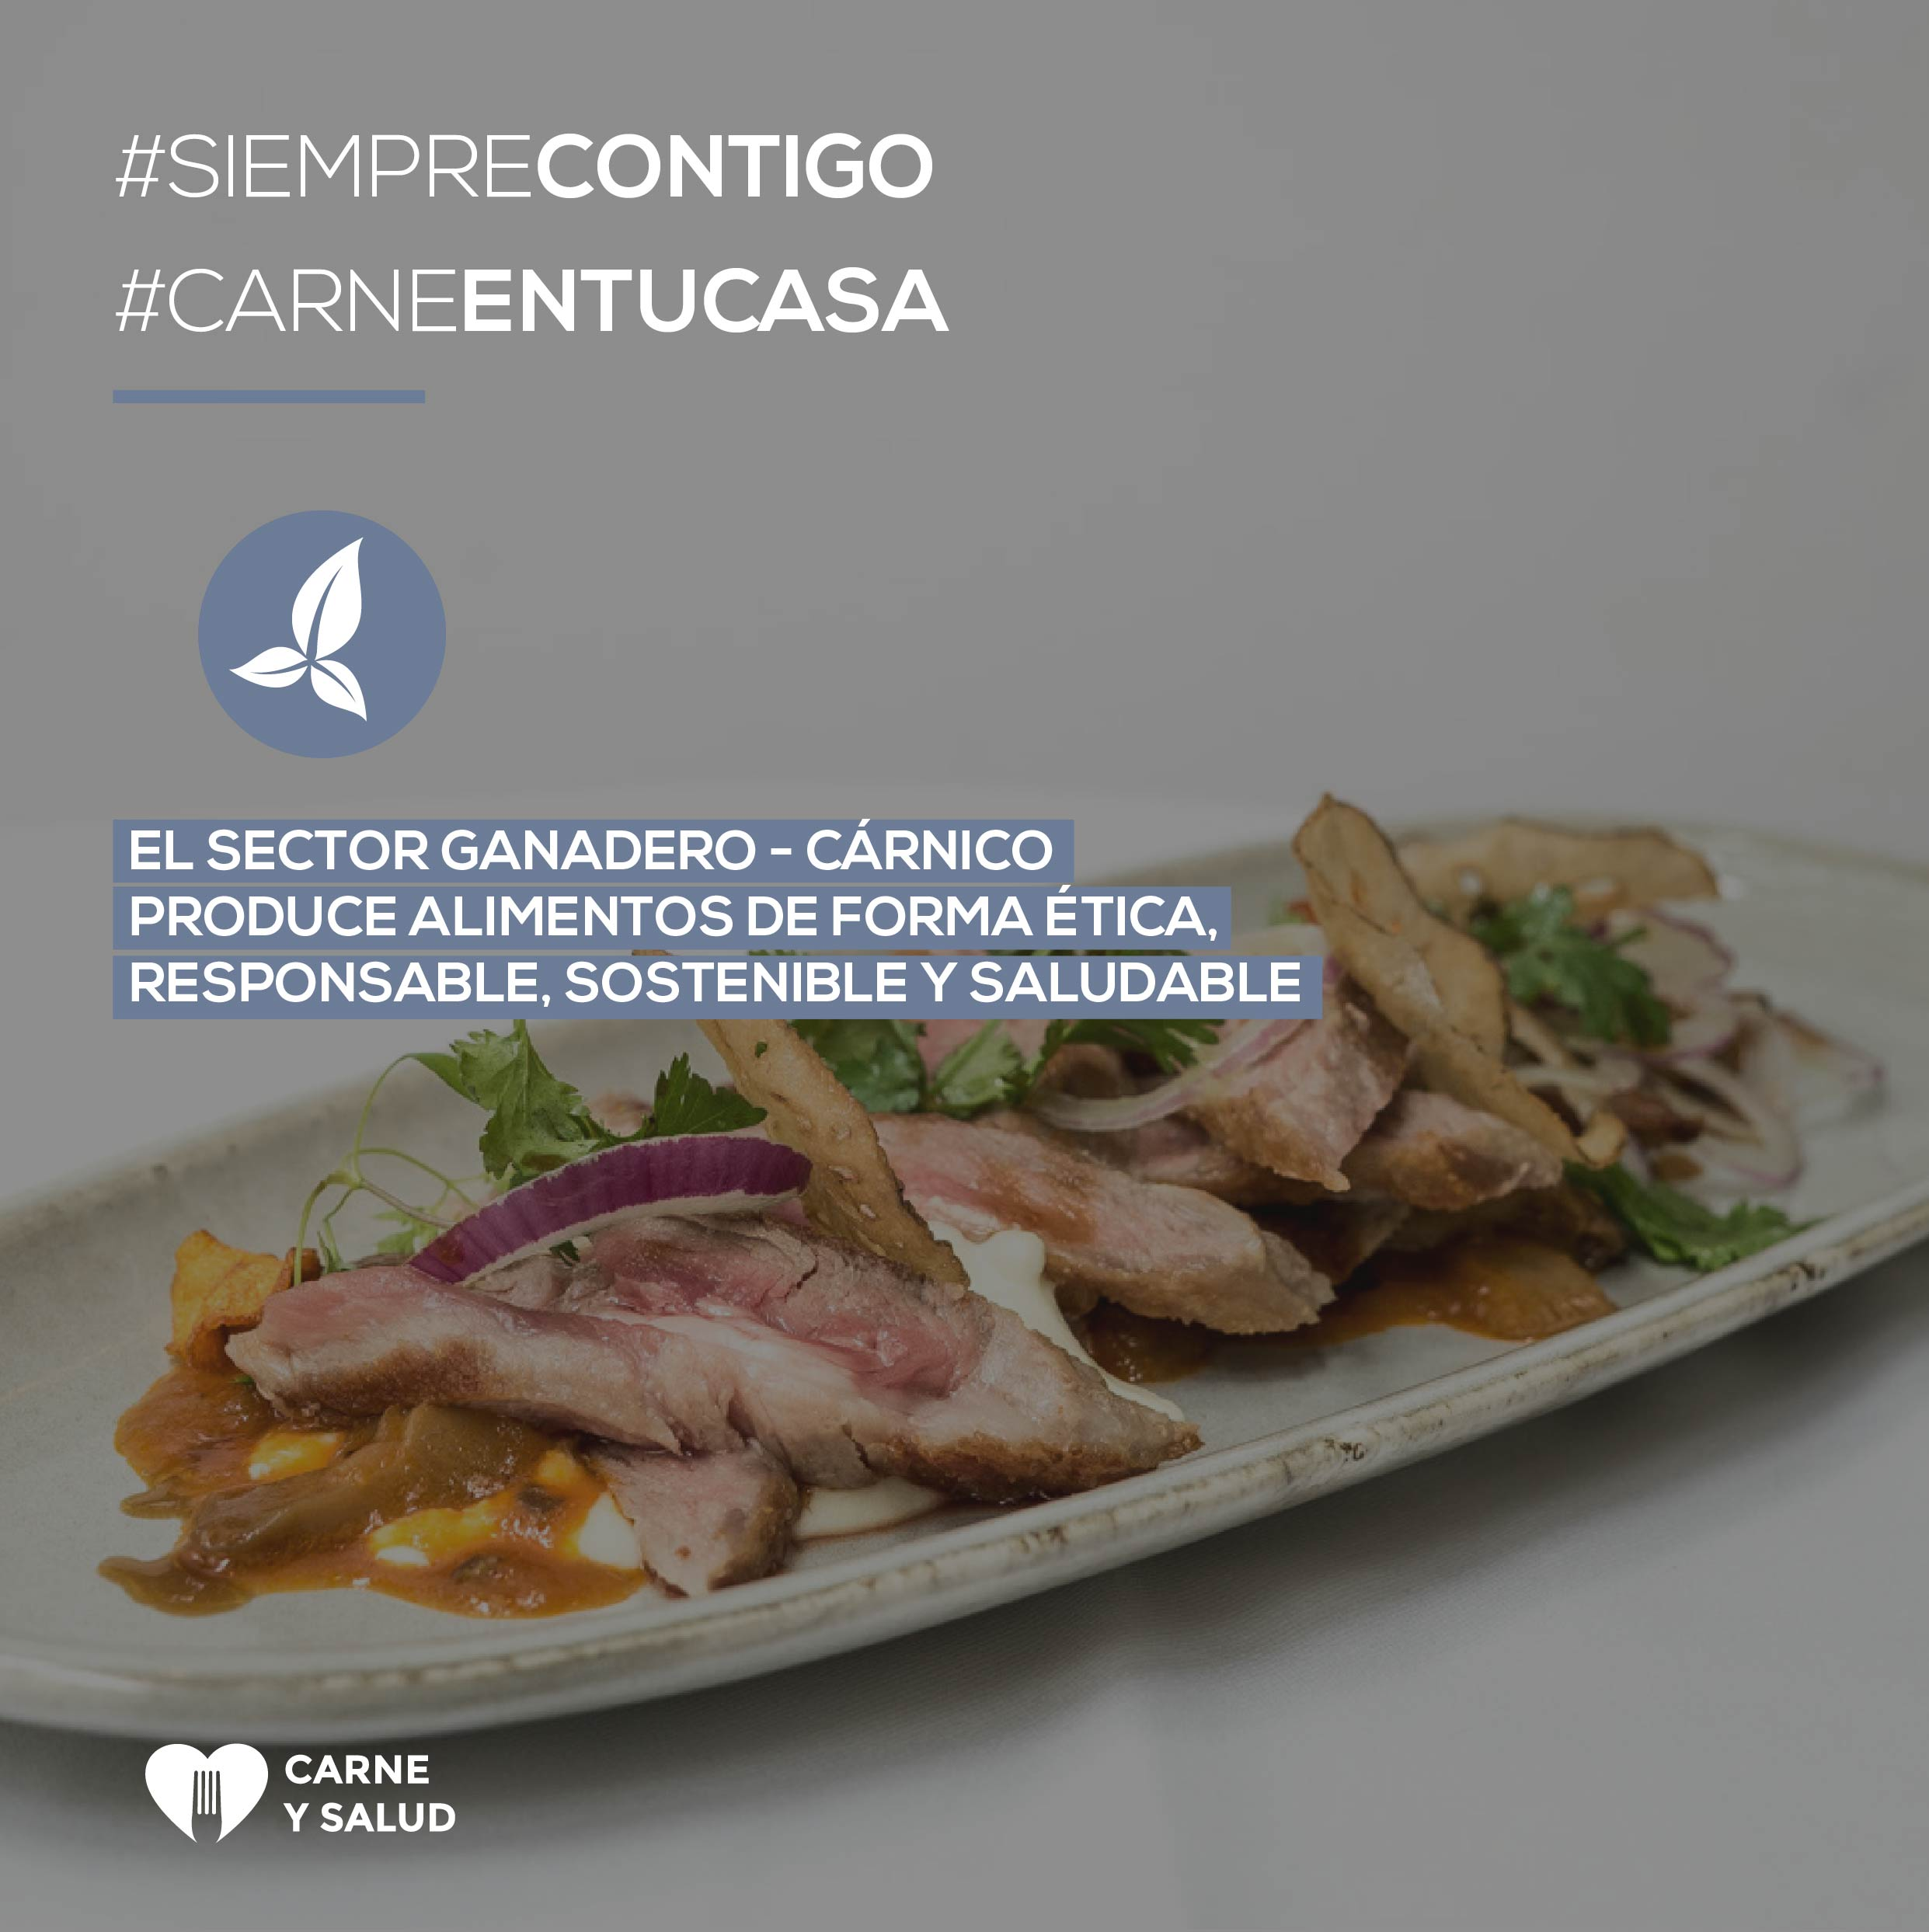 Carne Y Salud. Meat And Processed Meat, Protagonists During Confinement